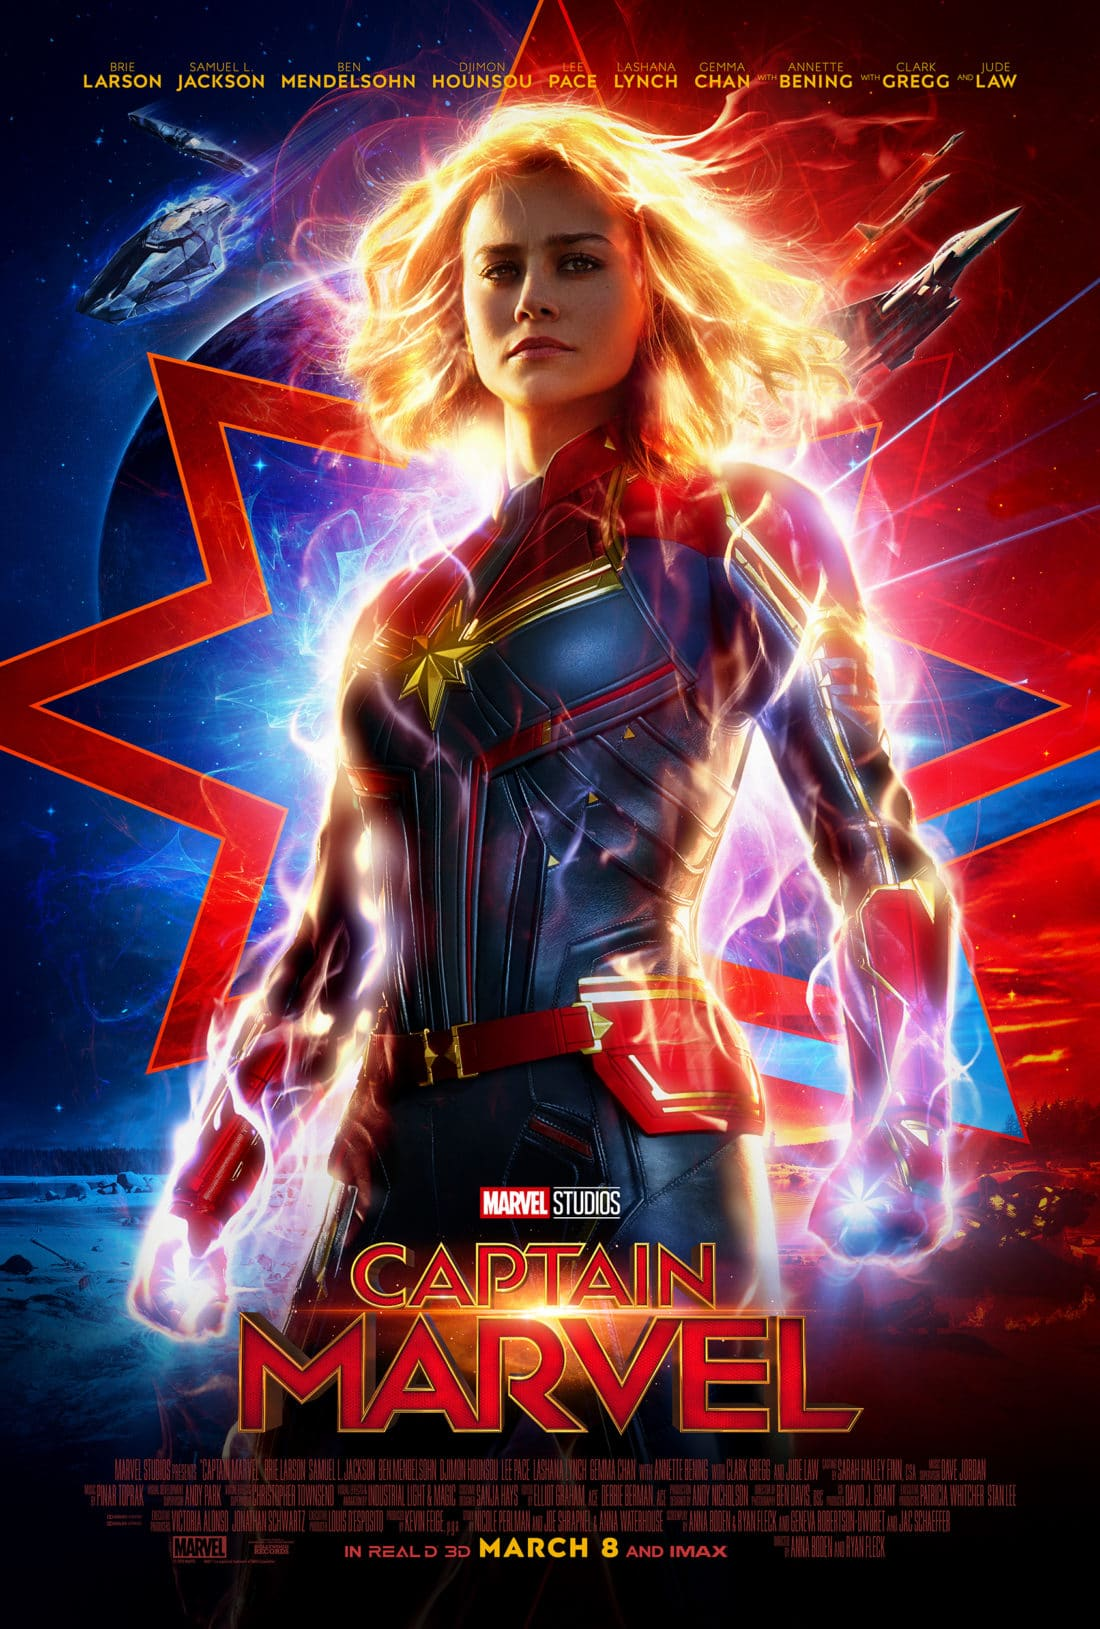 Marvel Studios Captain Marvel Movie Poster. Set in the 1990s, Marvel Studios'CAPTAIN MARVELis an all-new adventure from a previously unseen period in the history of the Marvel Cinematic Universe that follows the journey of Carol Danvers as she becomes one of the universe's most powerful heroes.